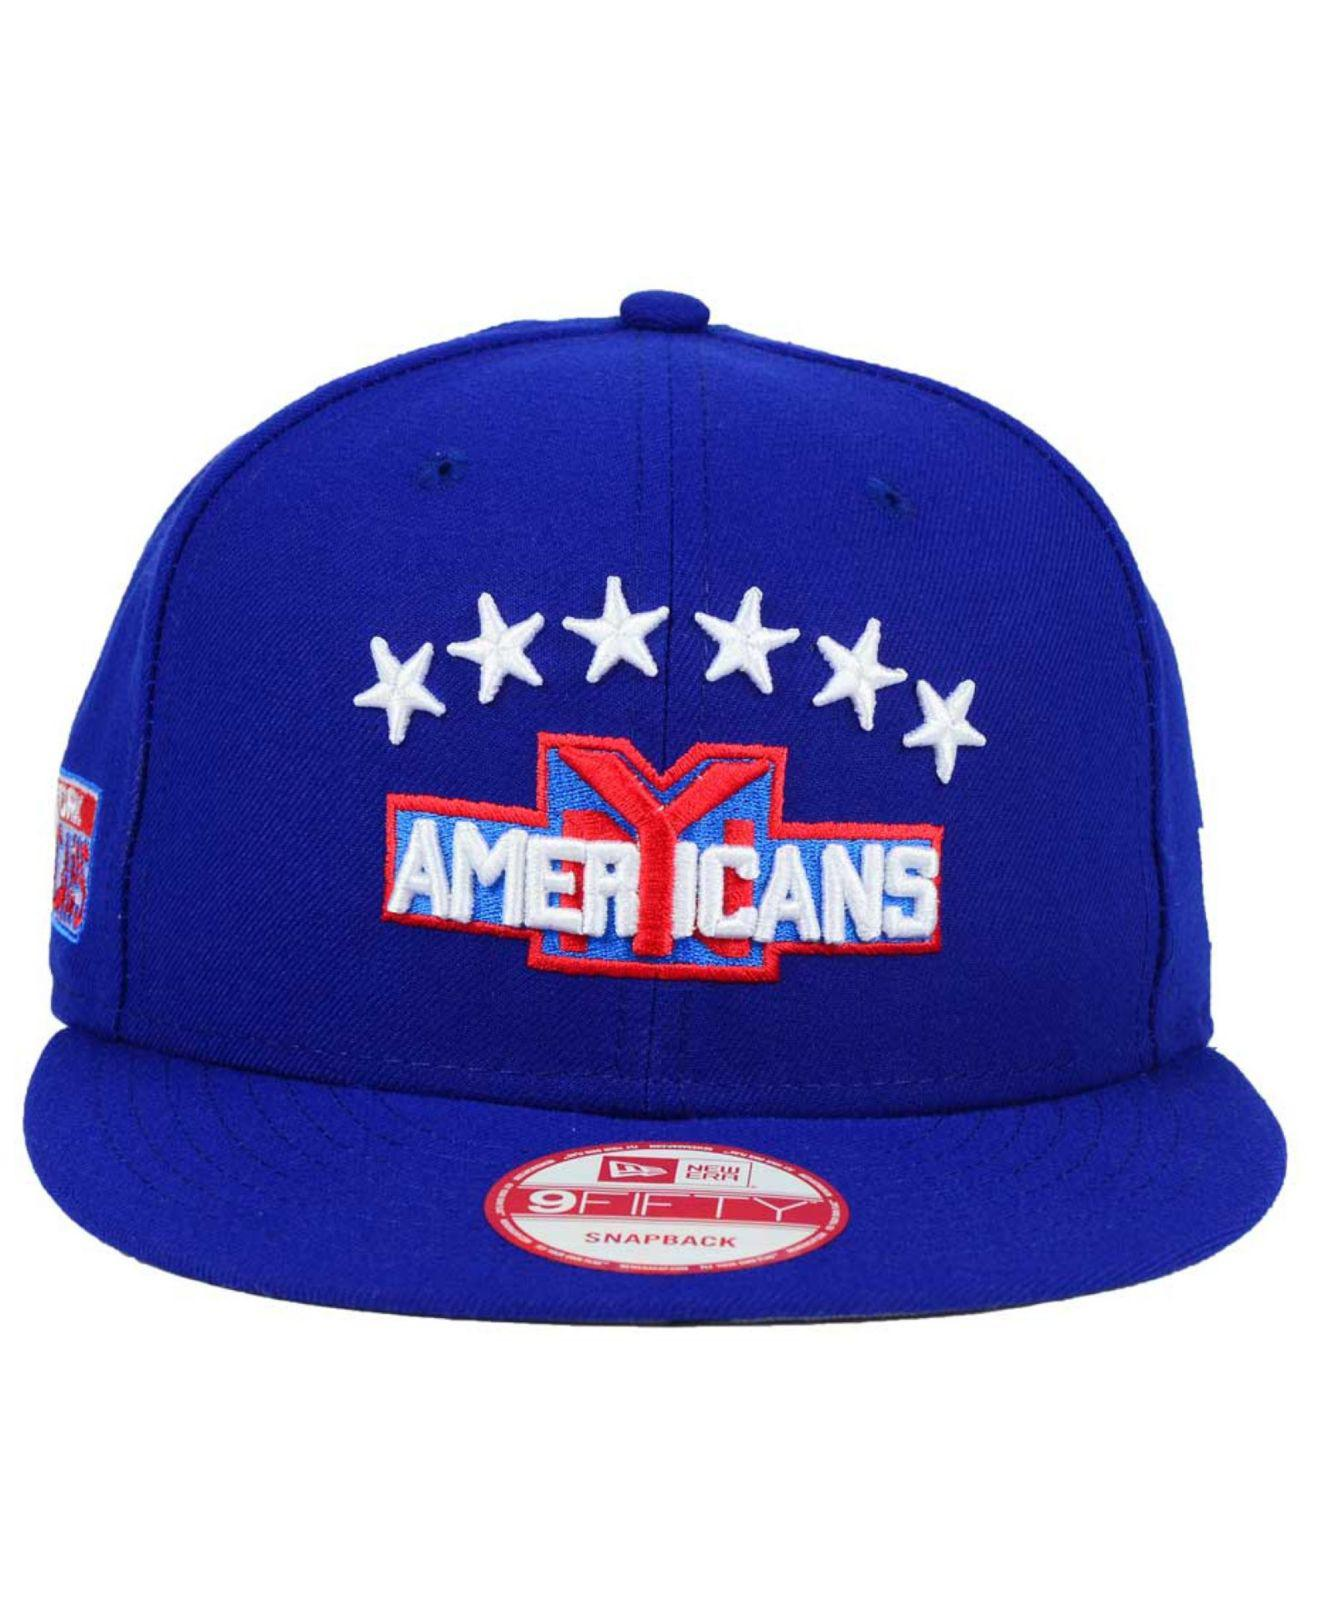 Lyst - KTZ New York Americans All Day 9fifty Snapback Cap in Blue for Men 0ac492c0a540